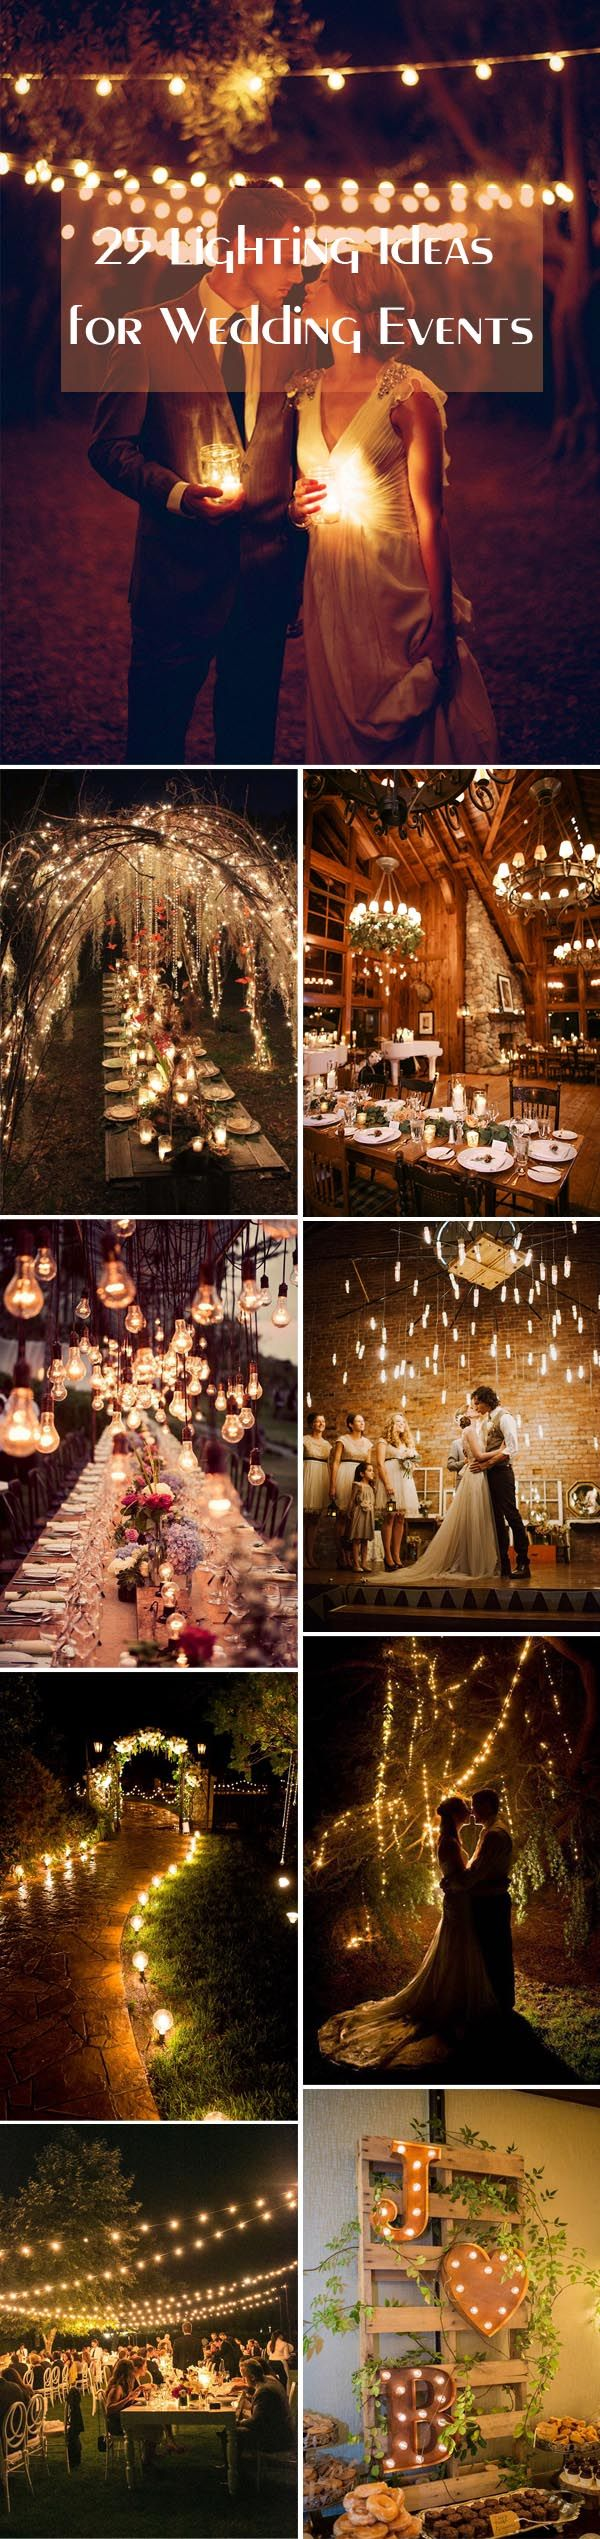 lighting ideas for weddings. best 25 wedding lighting ideas on pinterest outdoor decorations rustic string lights and hanging for weddings w